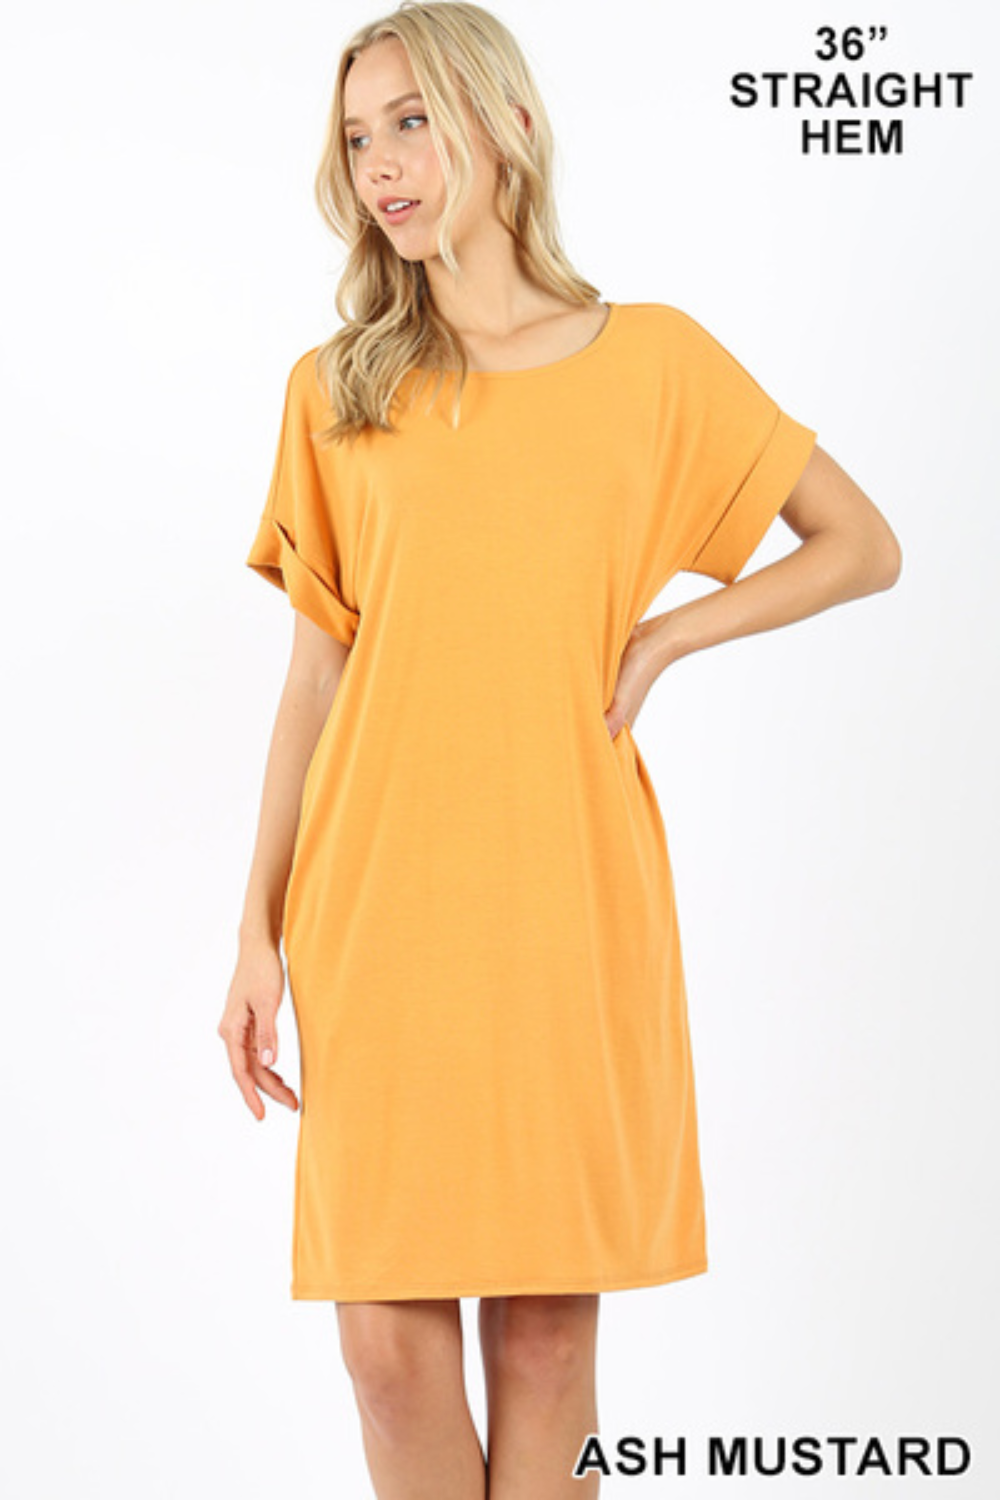 Basic T-shirt Dress in Ash Mustard